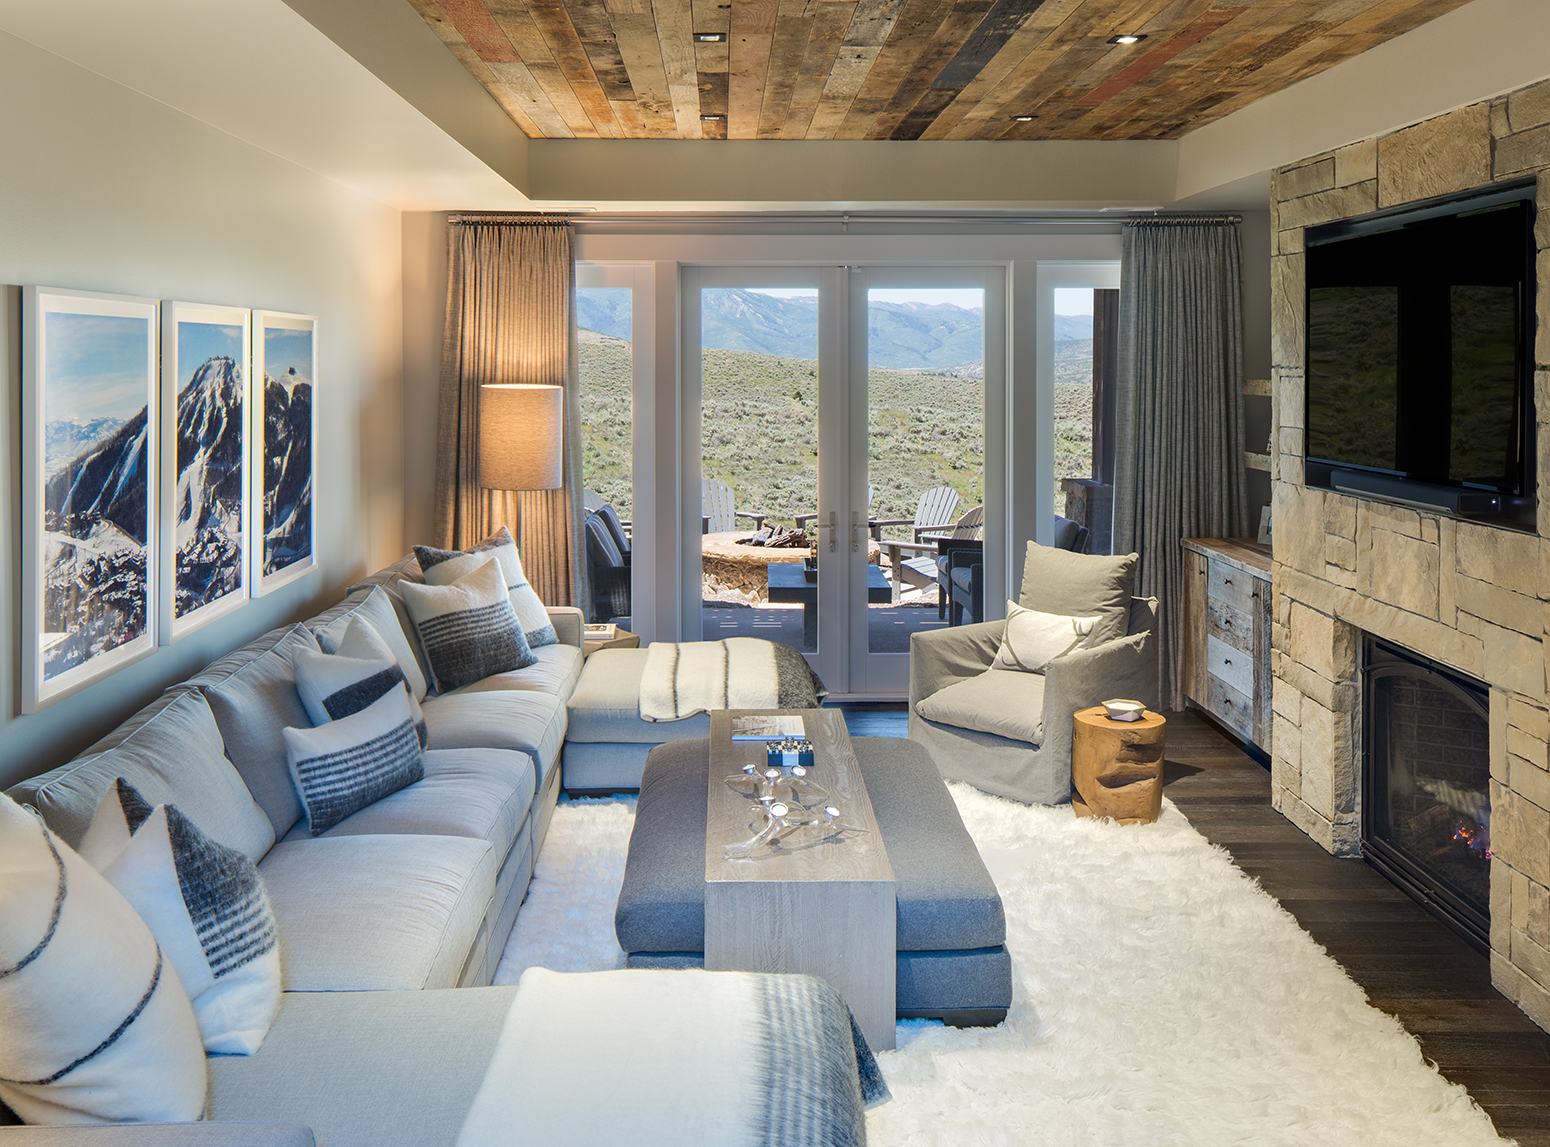 This is an interior photograph of a a tv room / den in a mountain rustic home. The viewer is looking through the room from a slightly elevated height and out the double glass doors on the far side with views of rolling sage hills and mountains in the backround. The floor has a faux sheep wool carpet with the ceiling covered in reclaimed wood planking. On one side of the room hangs a tv mounted in a stone floor to ceiling section with a gas firplace and on the other side of the room is a wrap around couch.